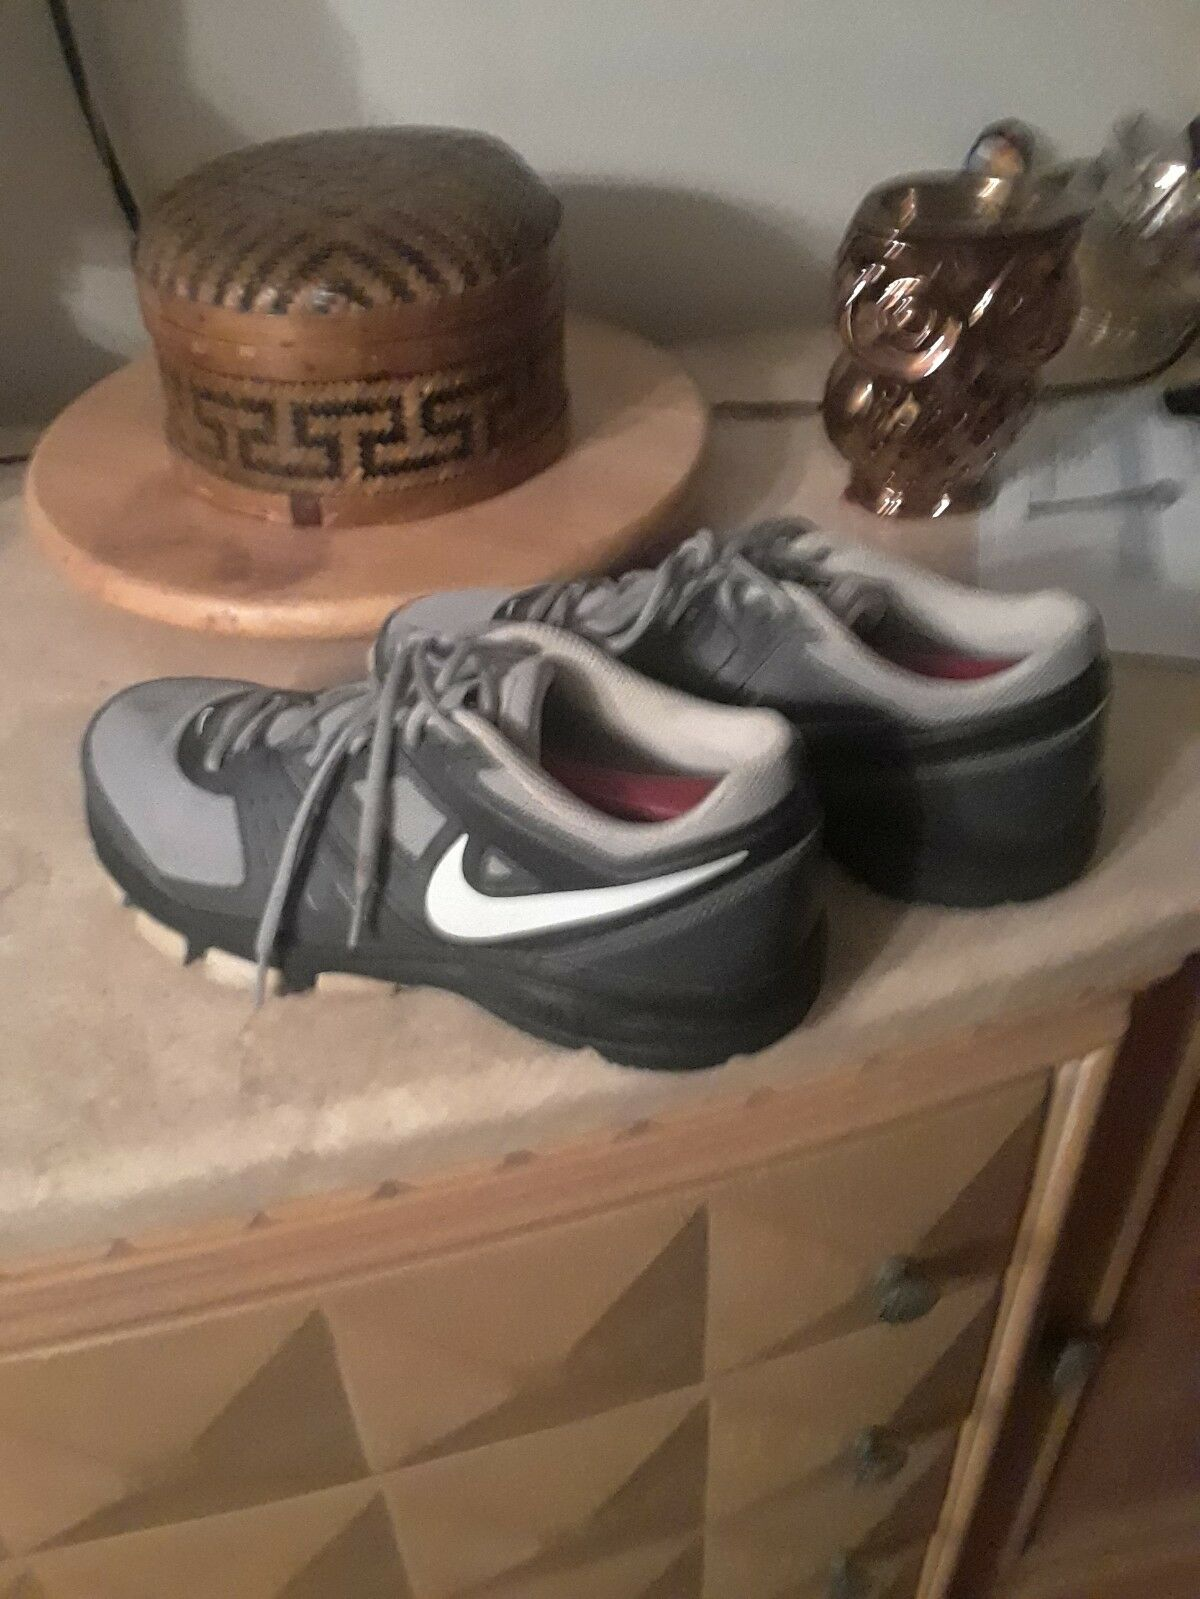 TNnike air trainers size 9 in very good condition condition condition grey colors, says Nike Air 1 c42665